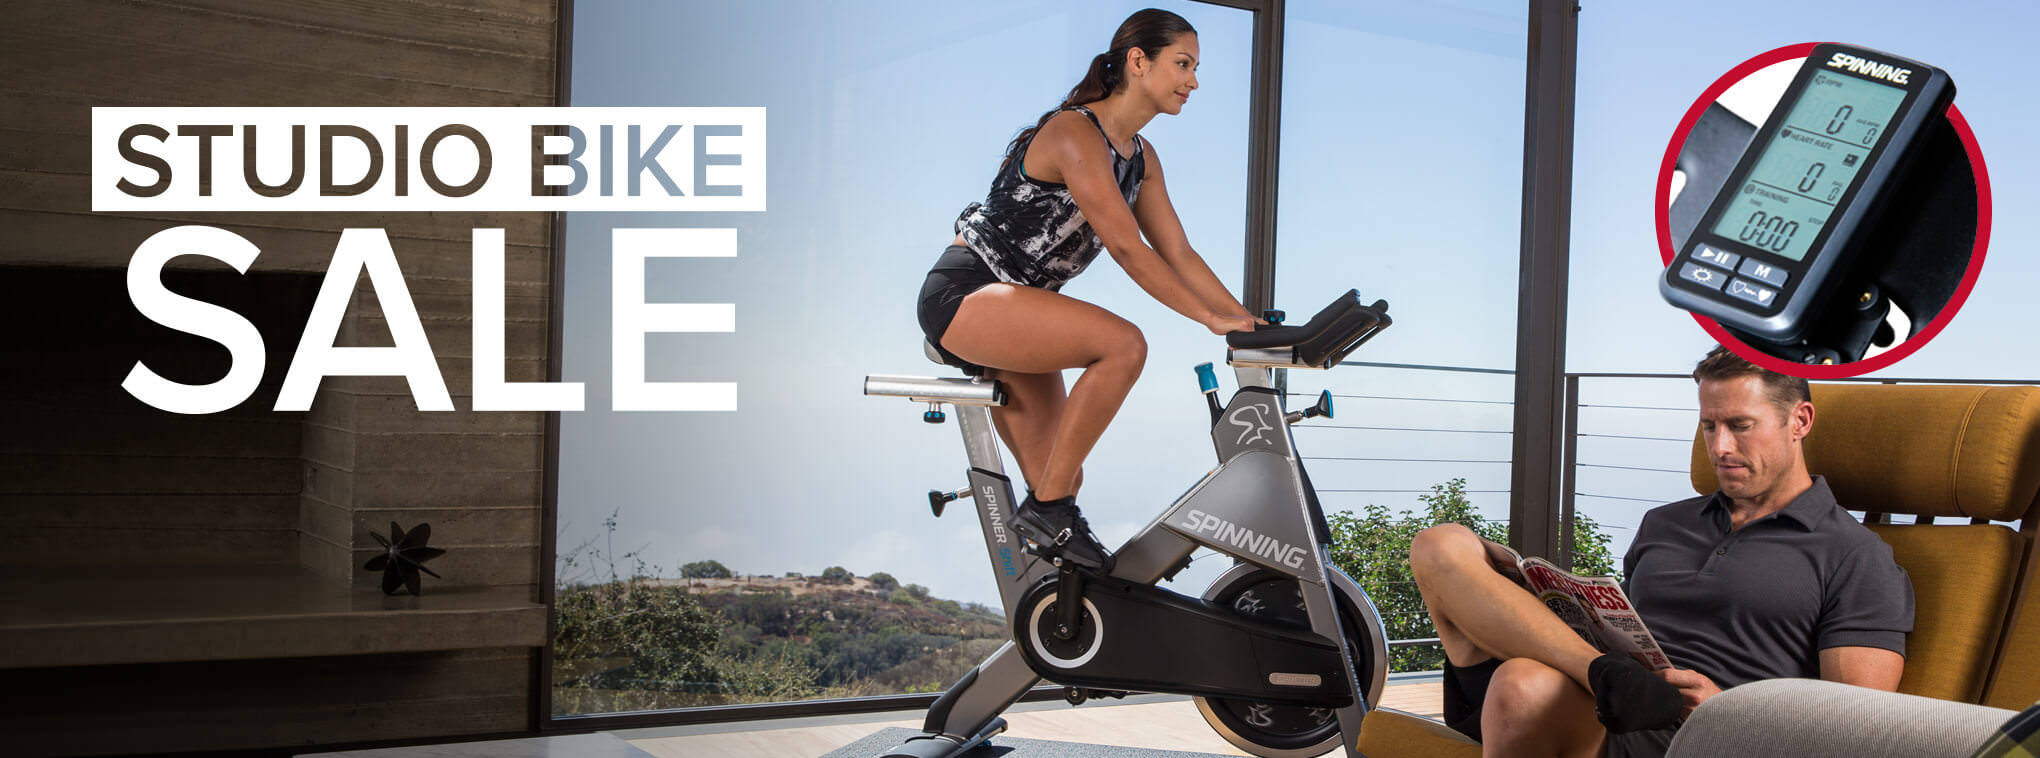 FREE SPINNING® COMPUTER WITH SELECT STUDIO BIKES